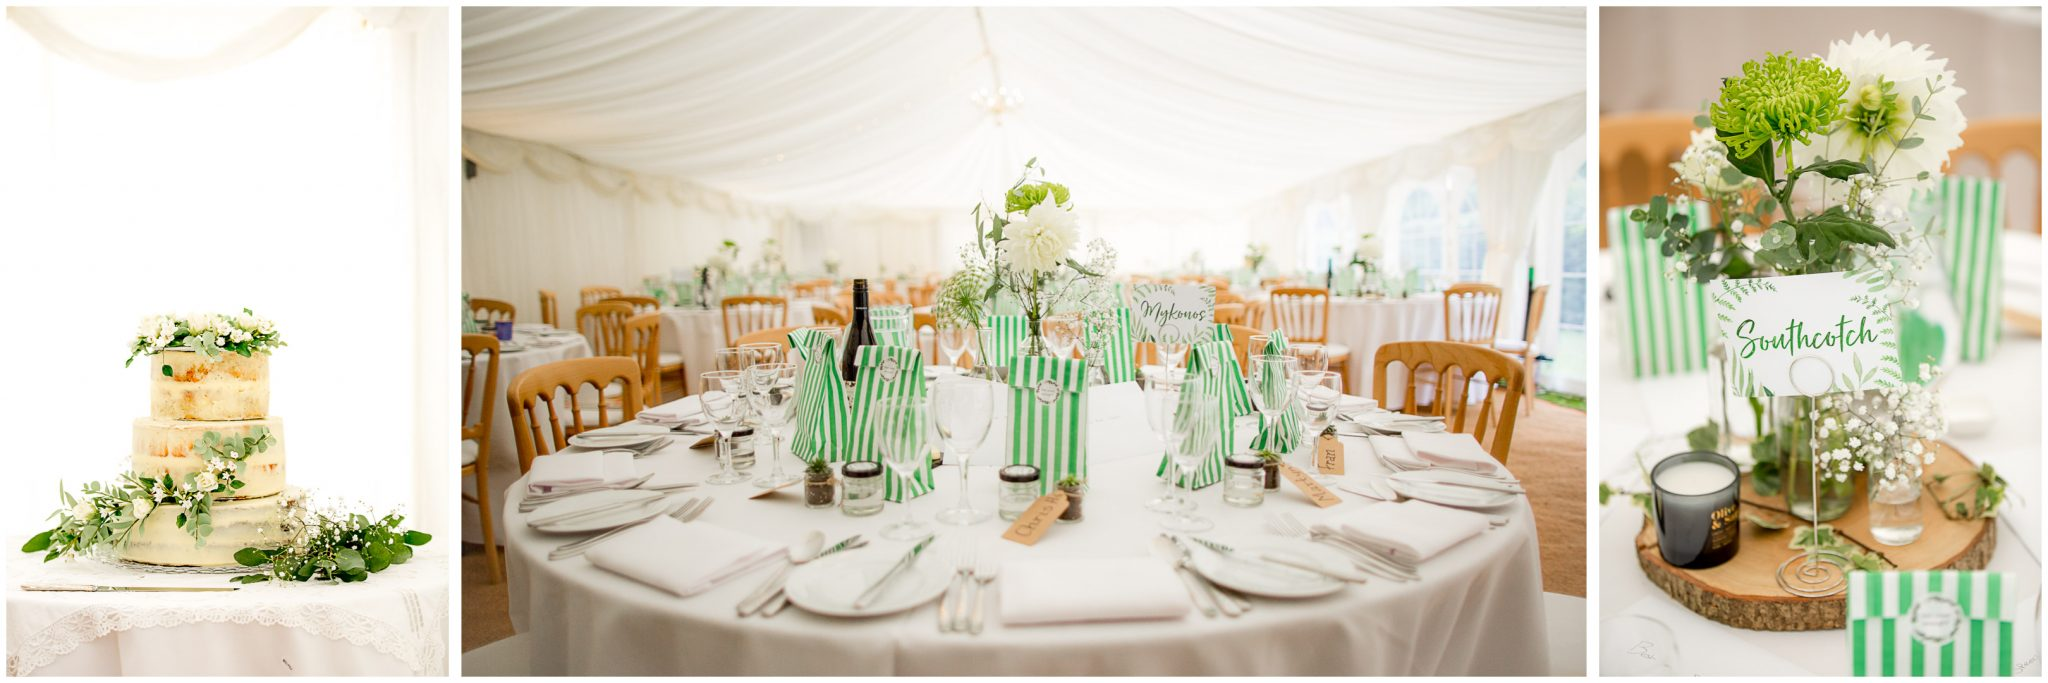 Interior set up for country garden marquee reception